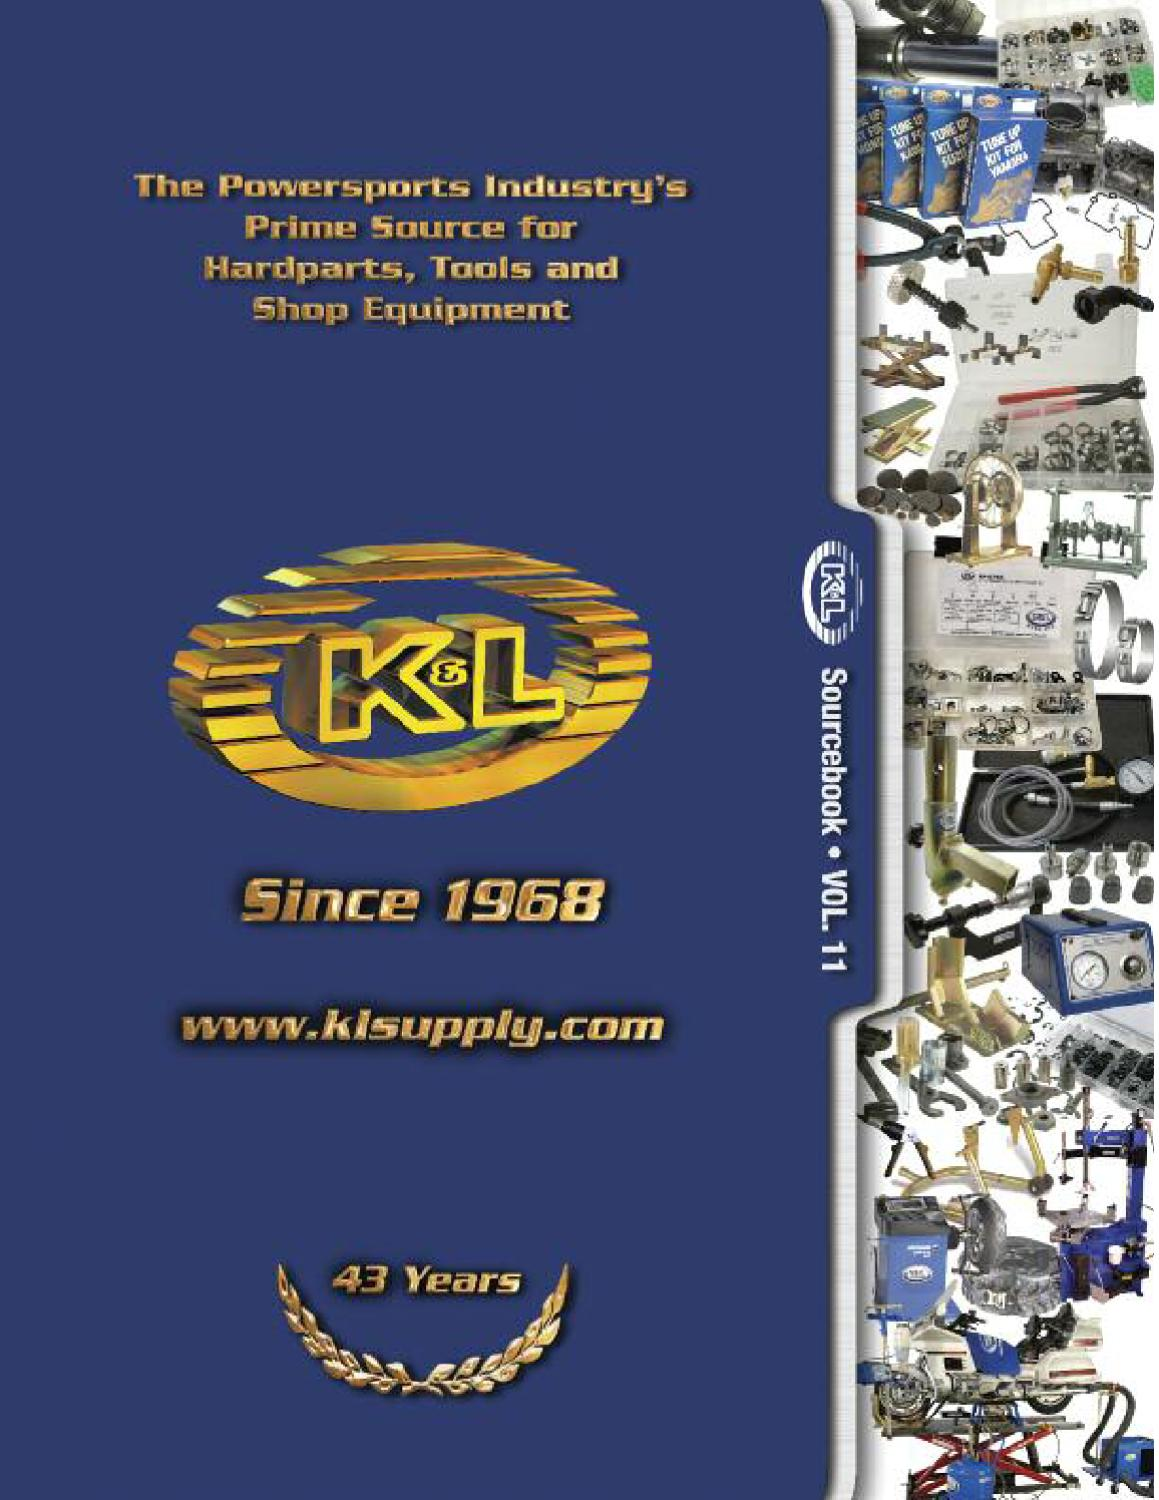 K l supply 2011 catalog by klsupply k l issuu for Gardeners supply company catalog